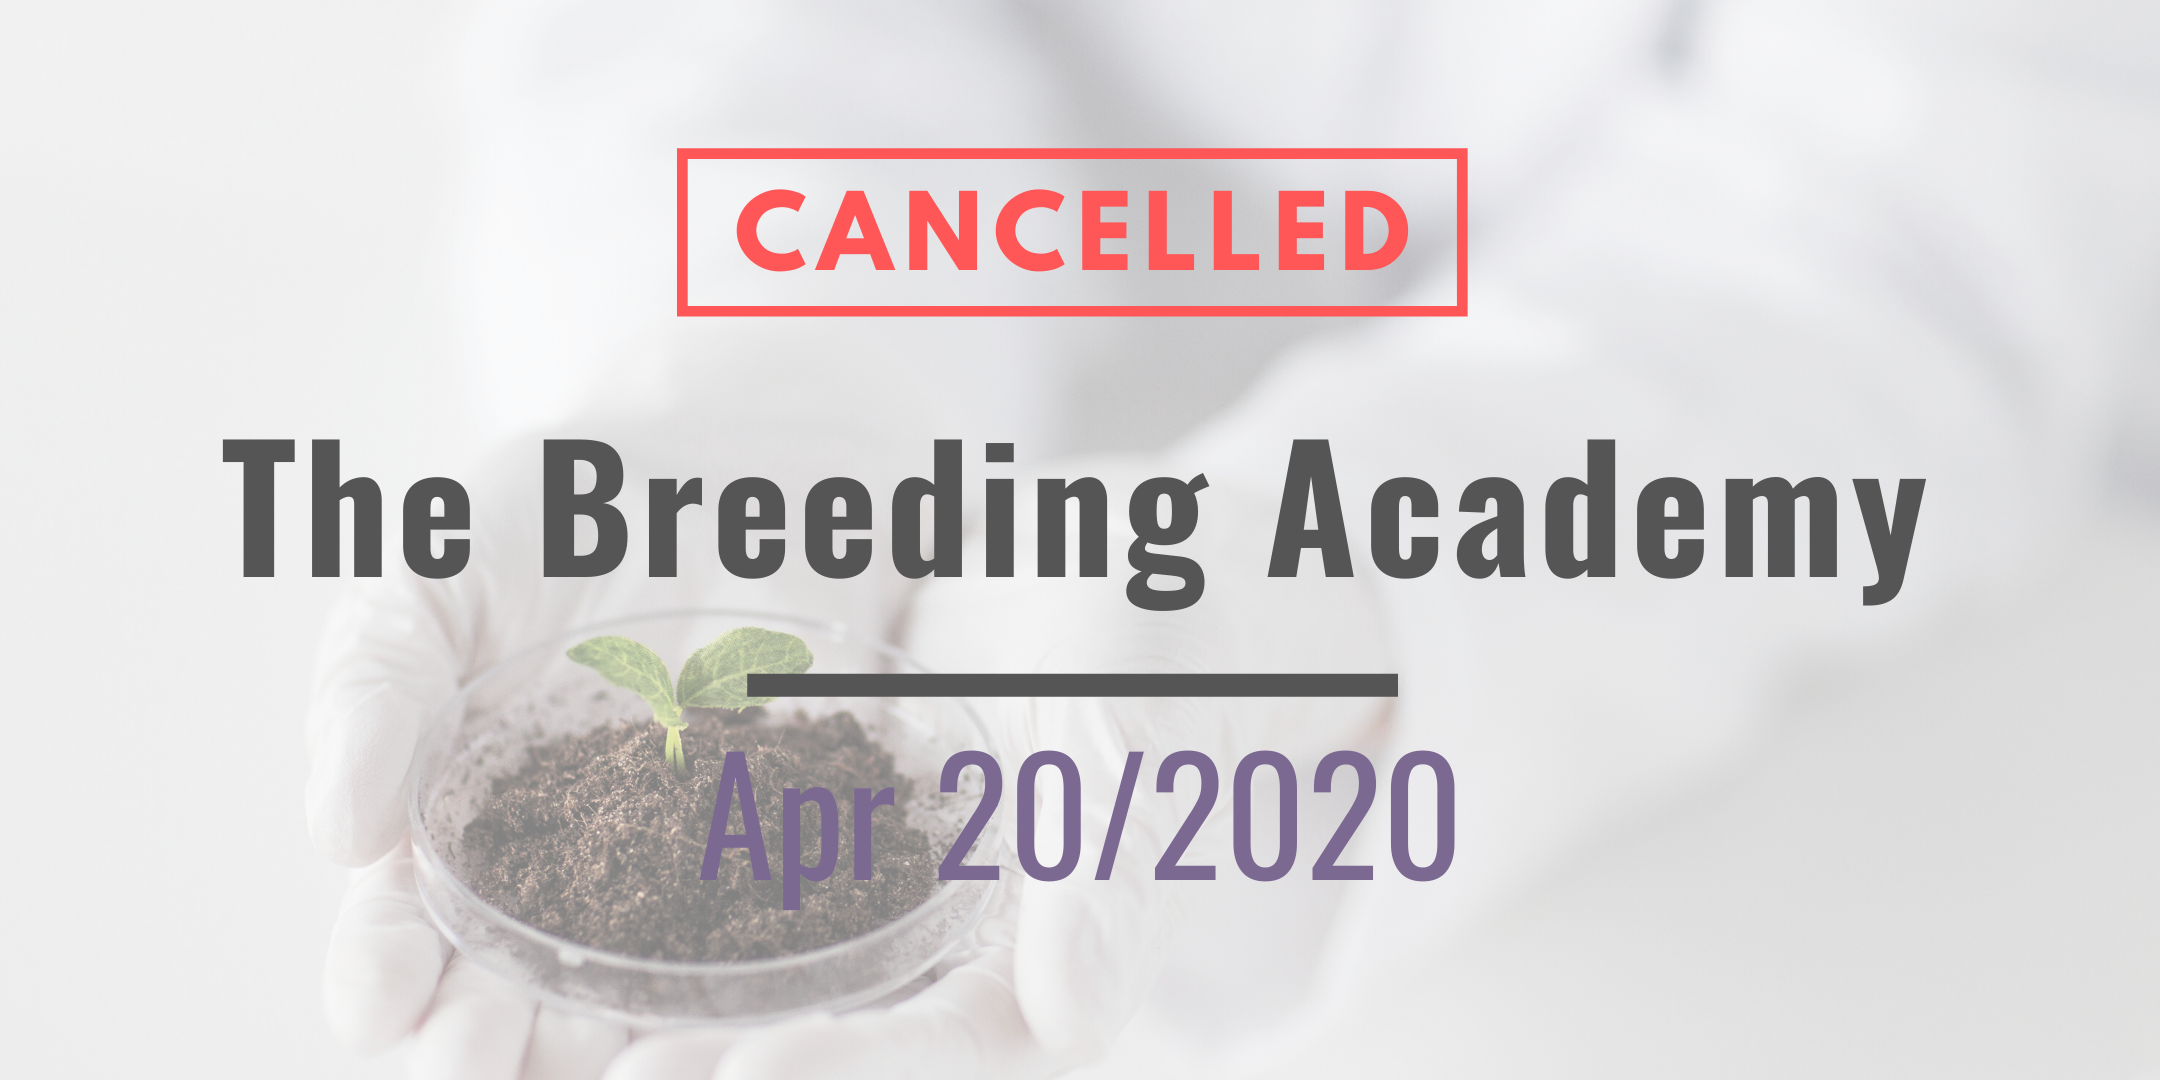 20/04/2020 – NEW! The CIOPORA Breeding Academy Marrakesh